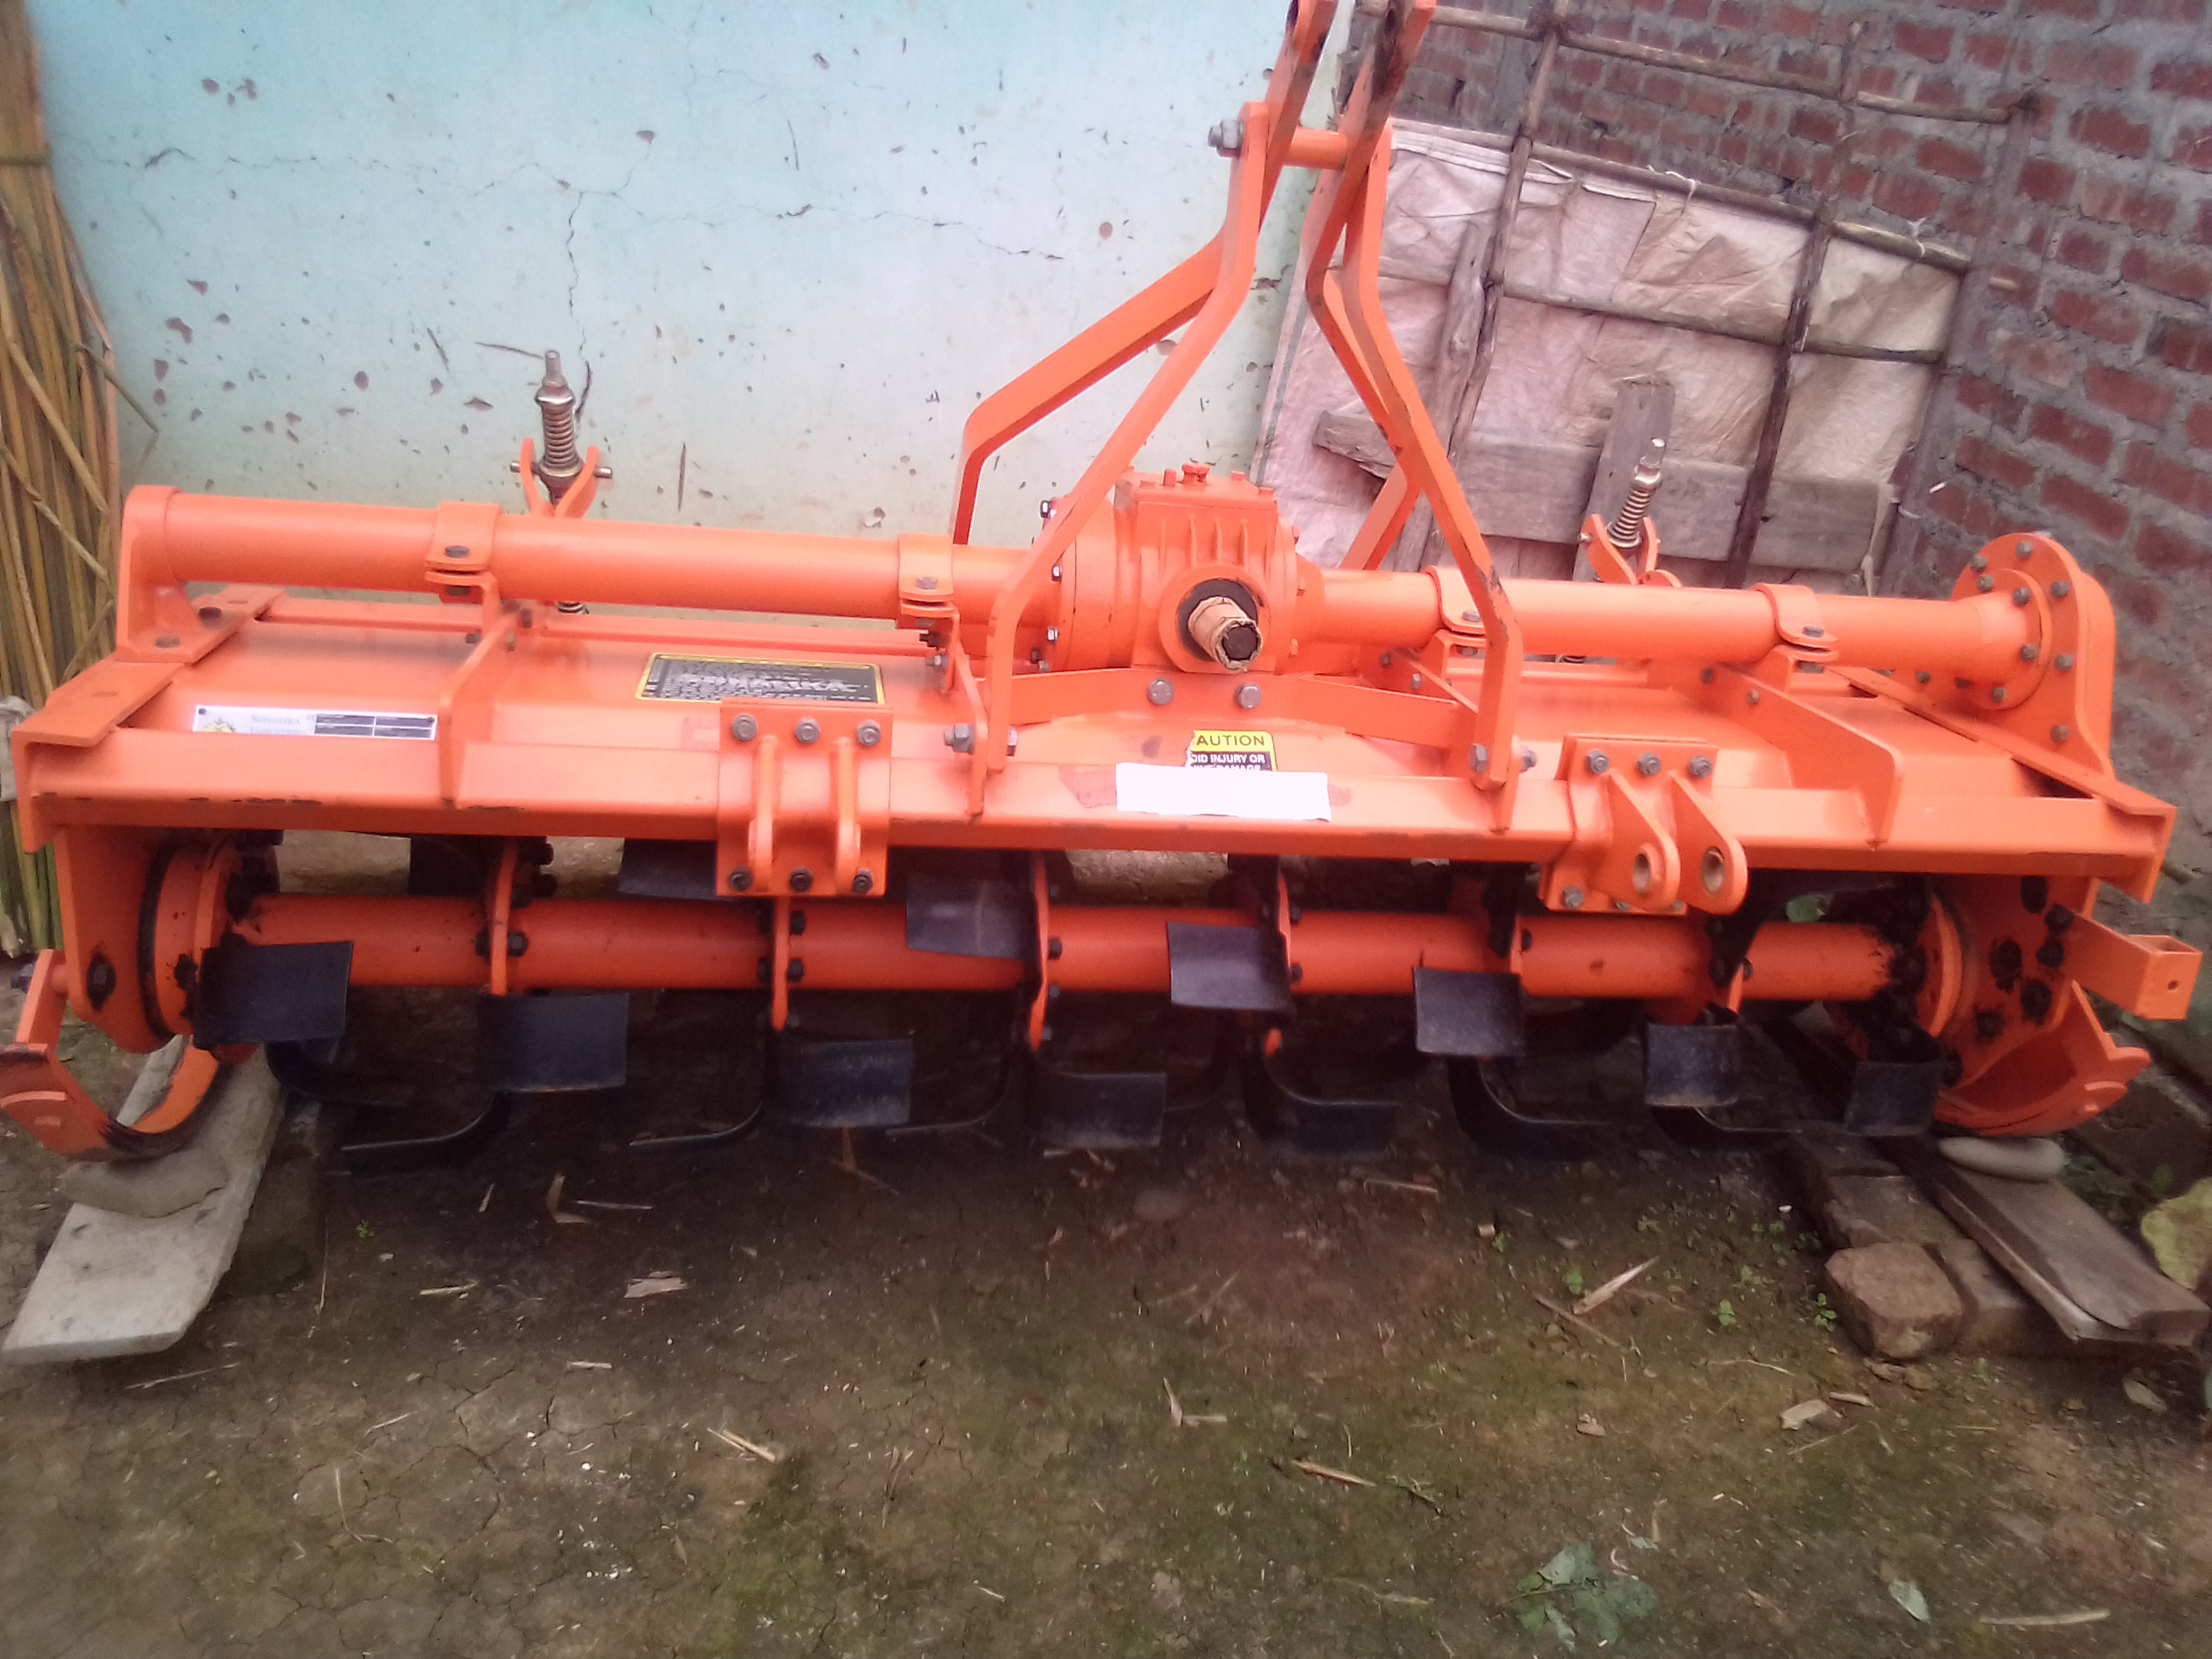 Rotavator ahanba 2020 model 6 feet 42 blede